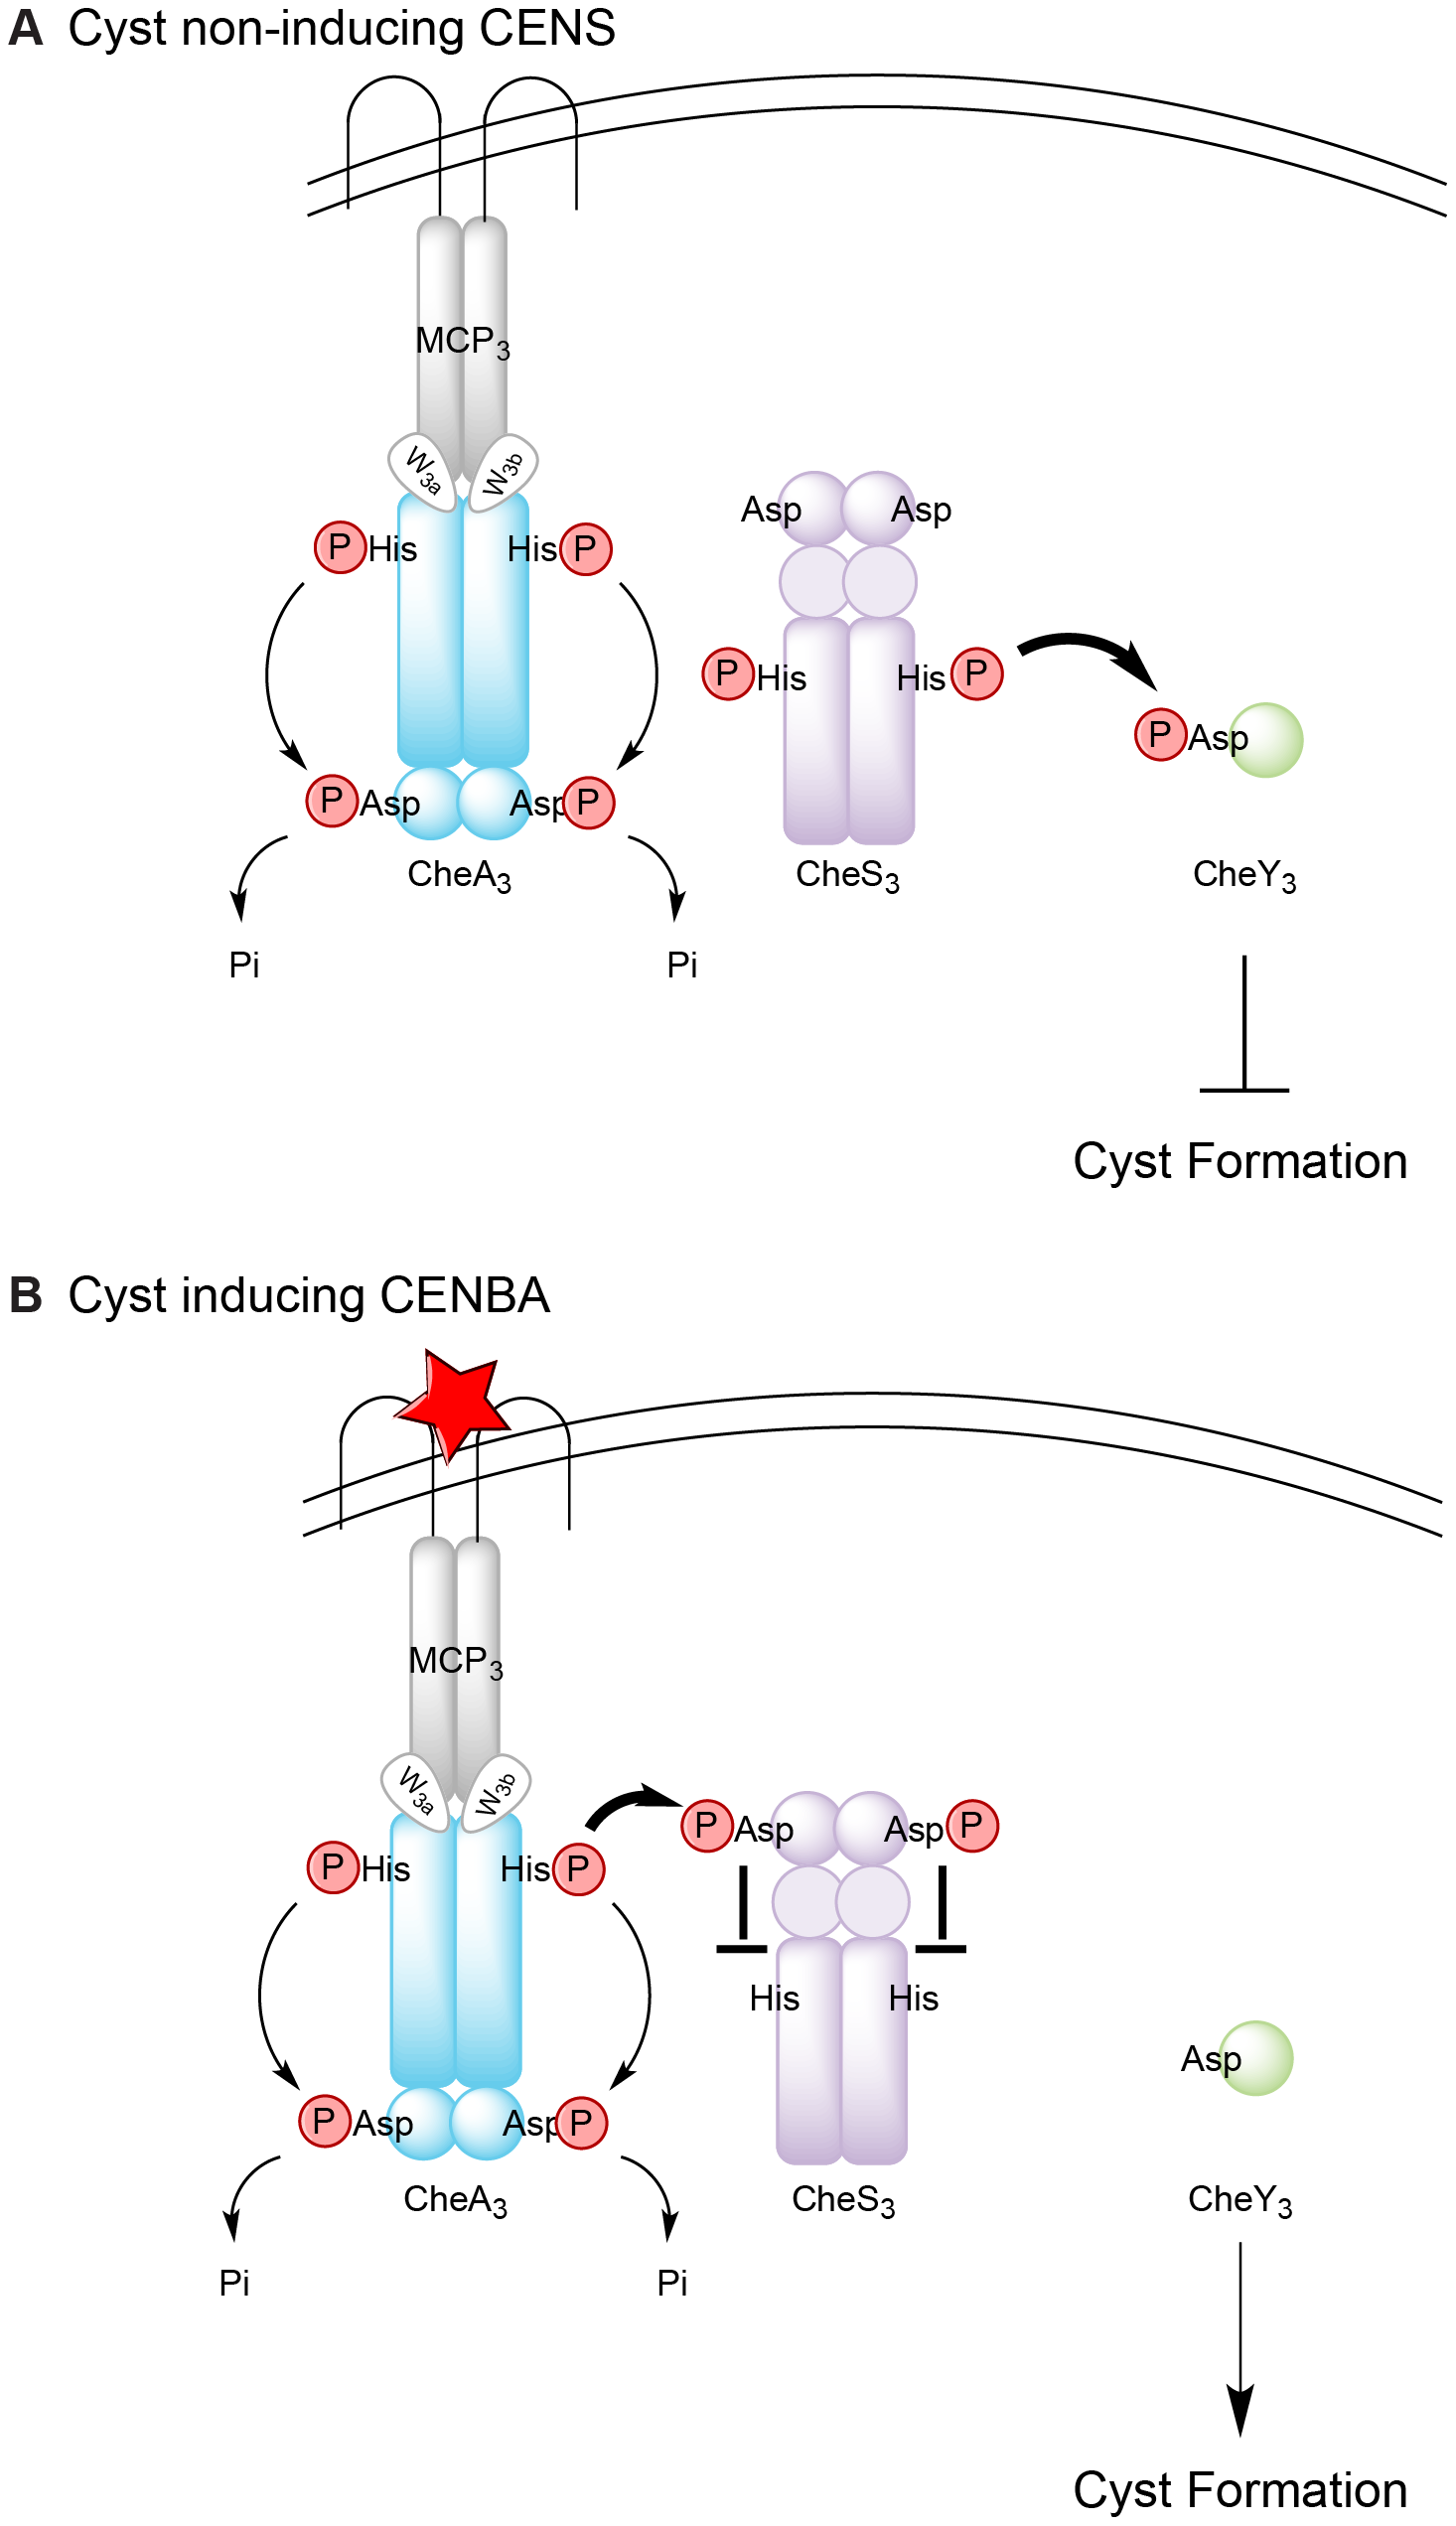 Model for regulation of Che<sub>3</sub> signal transduction pathway.